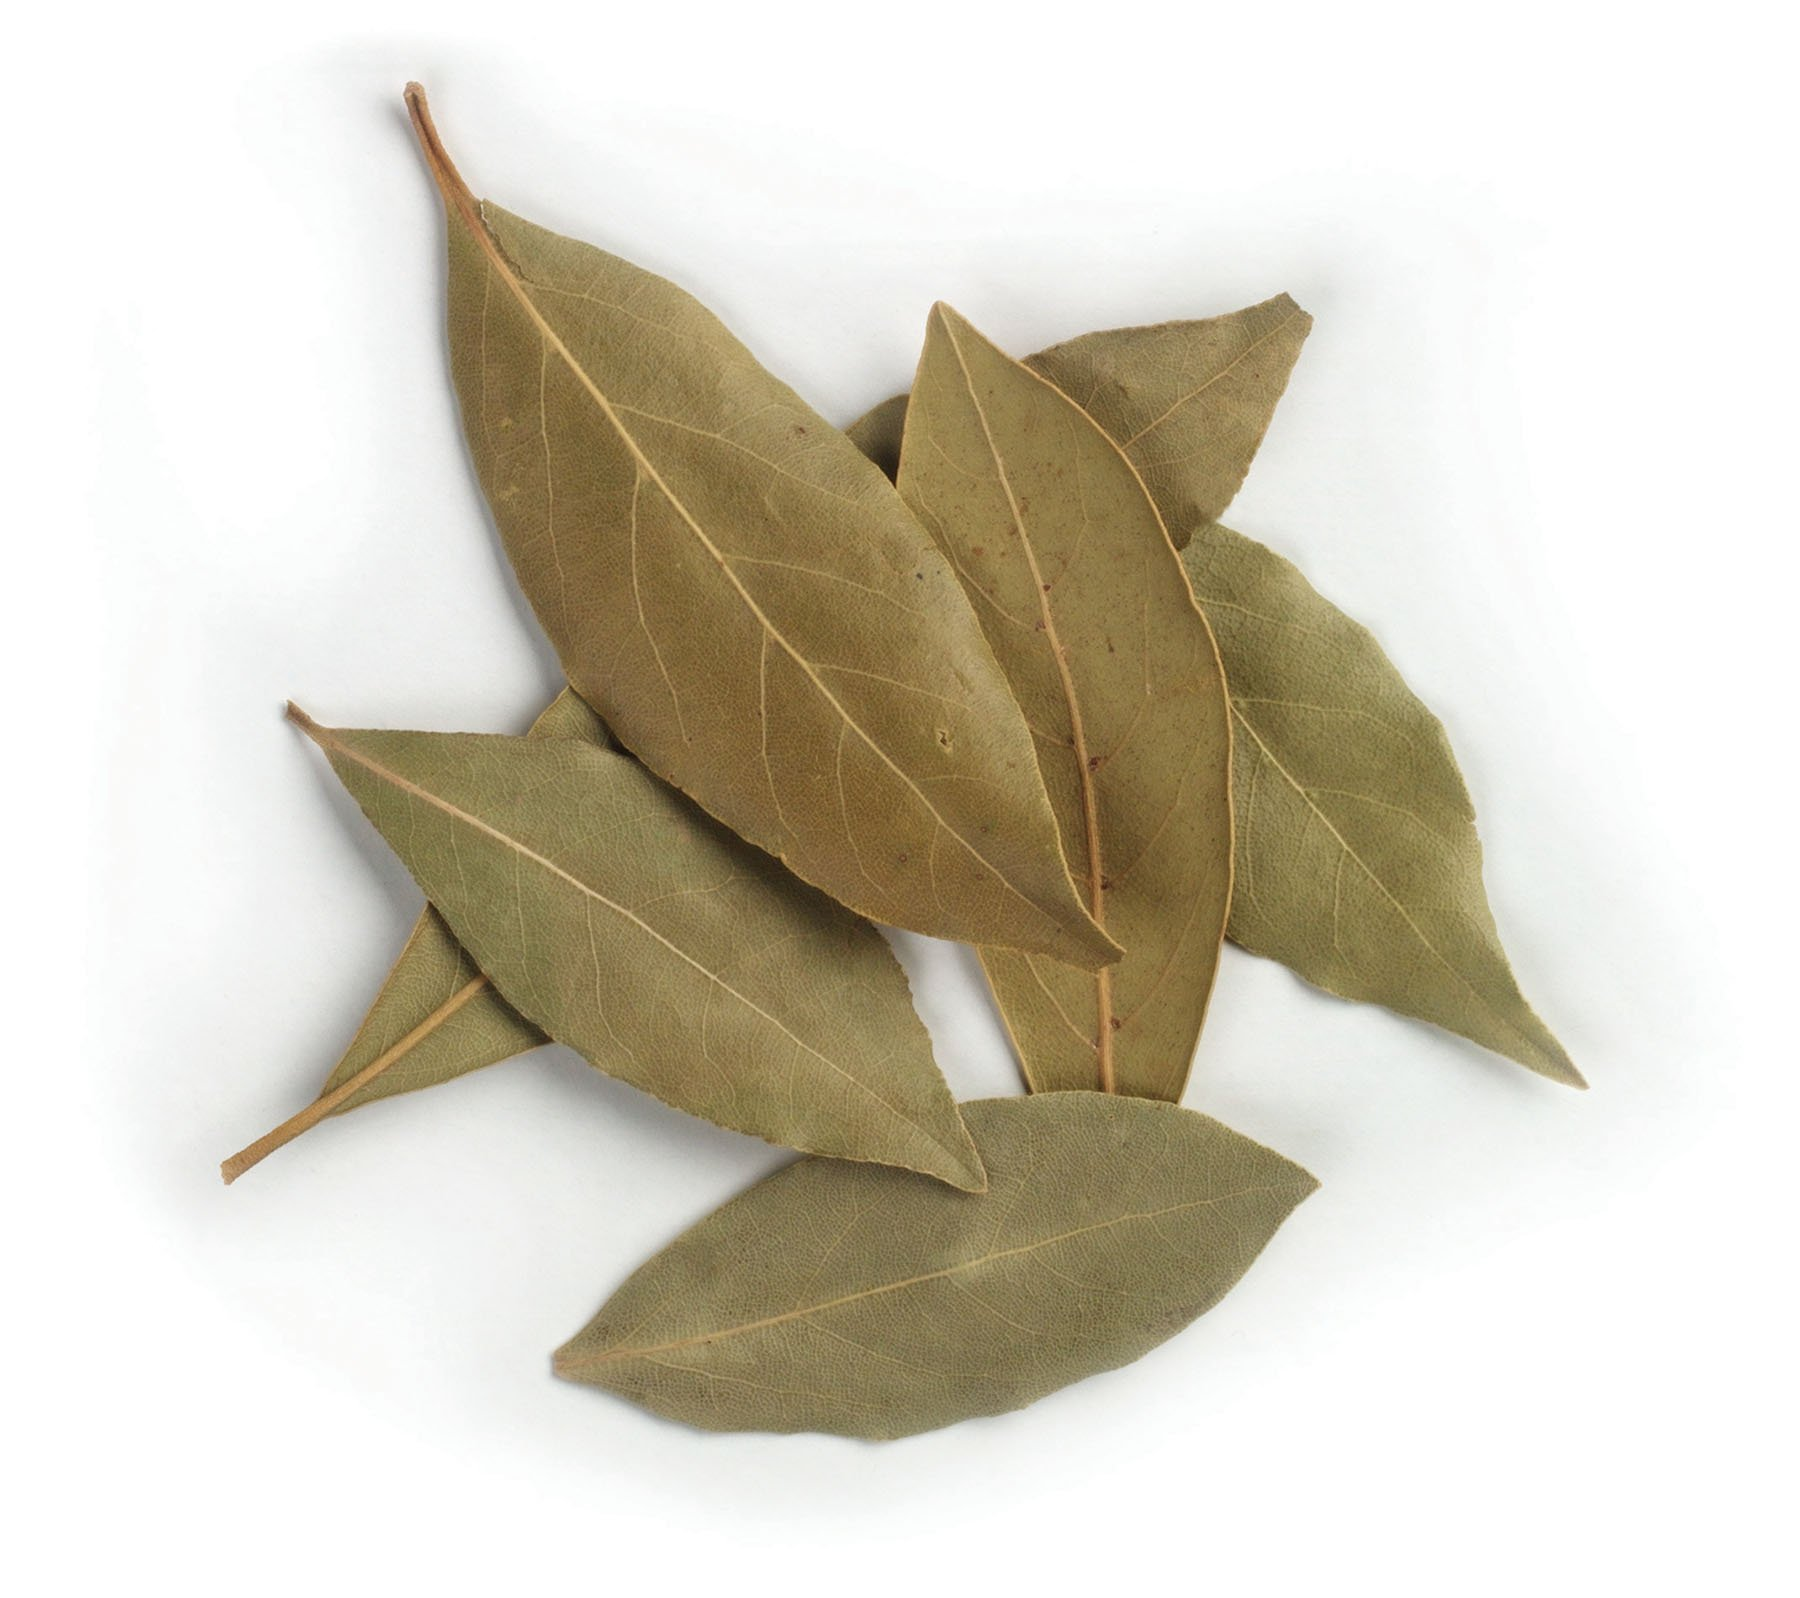 Frontier Co-op Organic Bay Leaf, Whole, 1 Pound Bulk Bag by Frontier (Image #1)